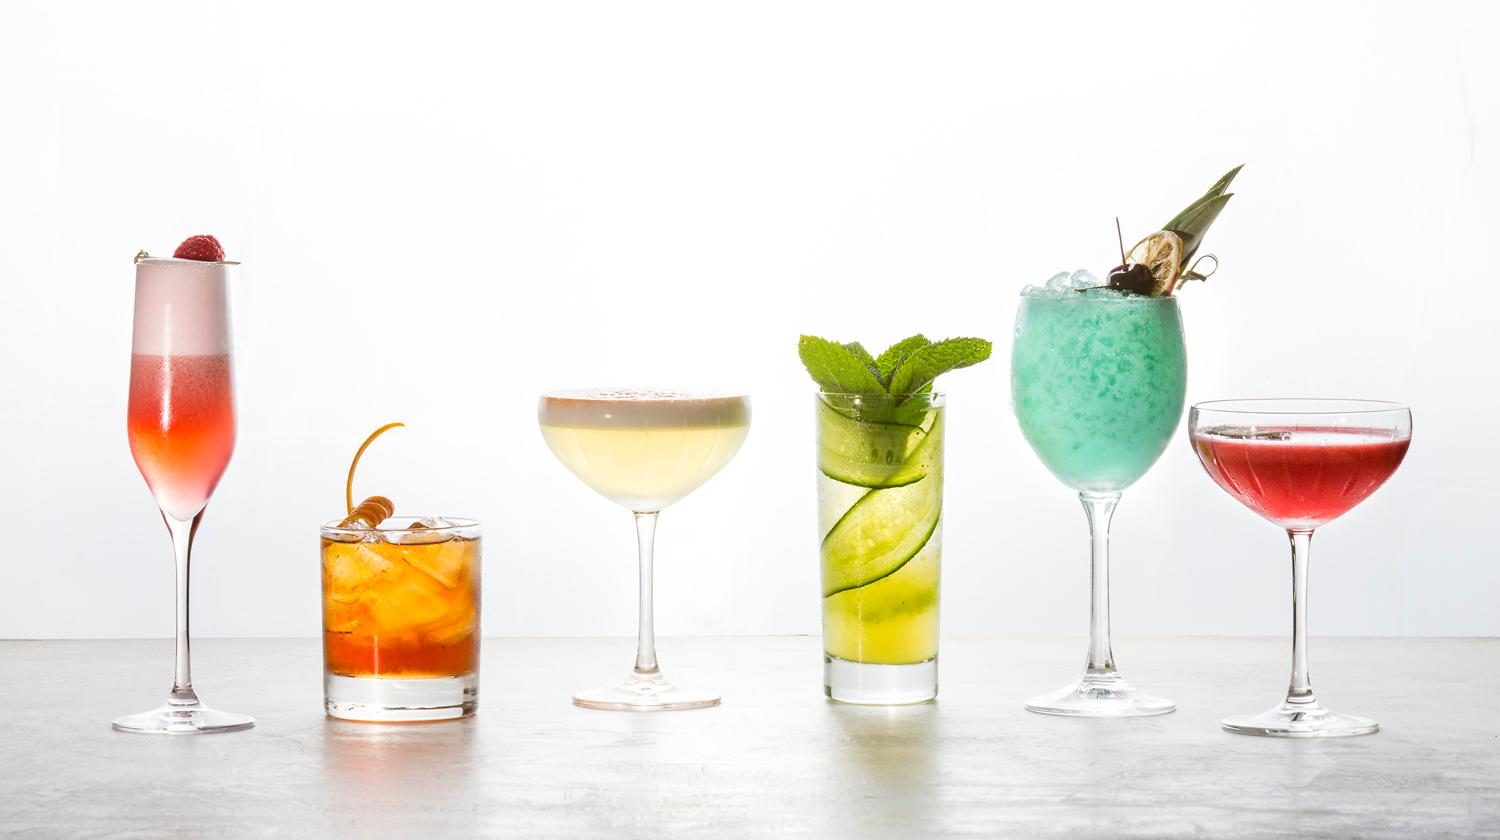 The Fairmont Olympic Hotel will be serving up the Rainbow Pride Flight from June 1-30 to celebrate Pride Month! Each cocktail costs $12, or you can try the whole set for $70 and 15% will go to the Lambert House which supports LGBTQ youth. (Sy Bean / Seattle Refined)